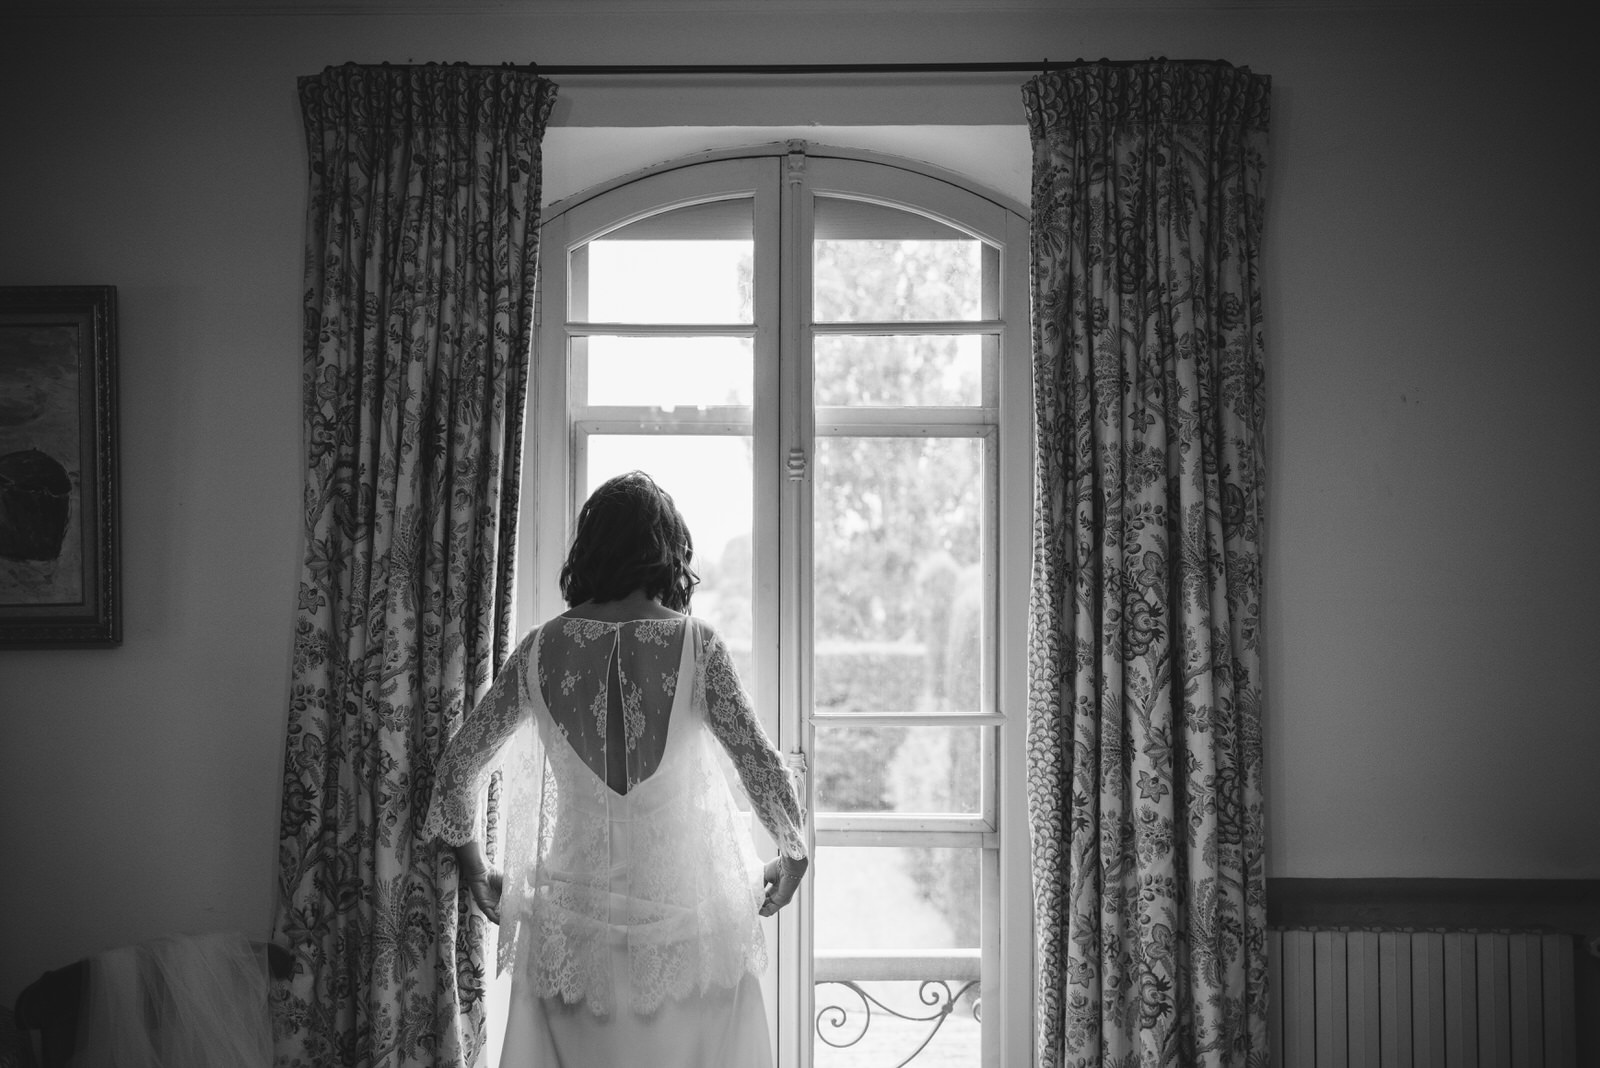 Lisebery photographe mariage famille entreprise grenoble lyon annecy chambery